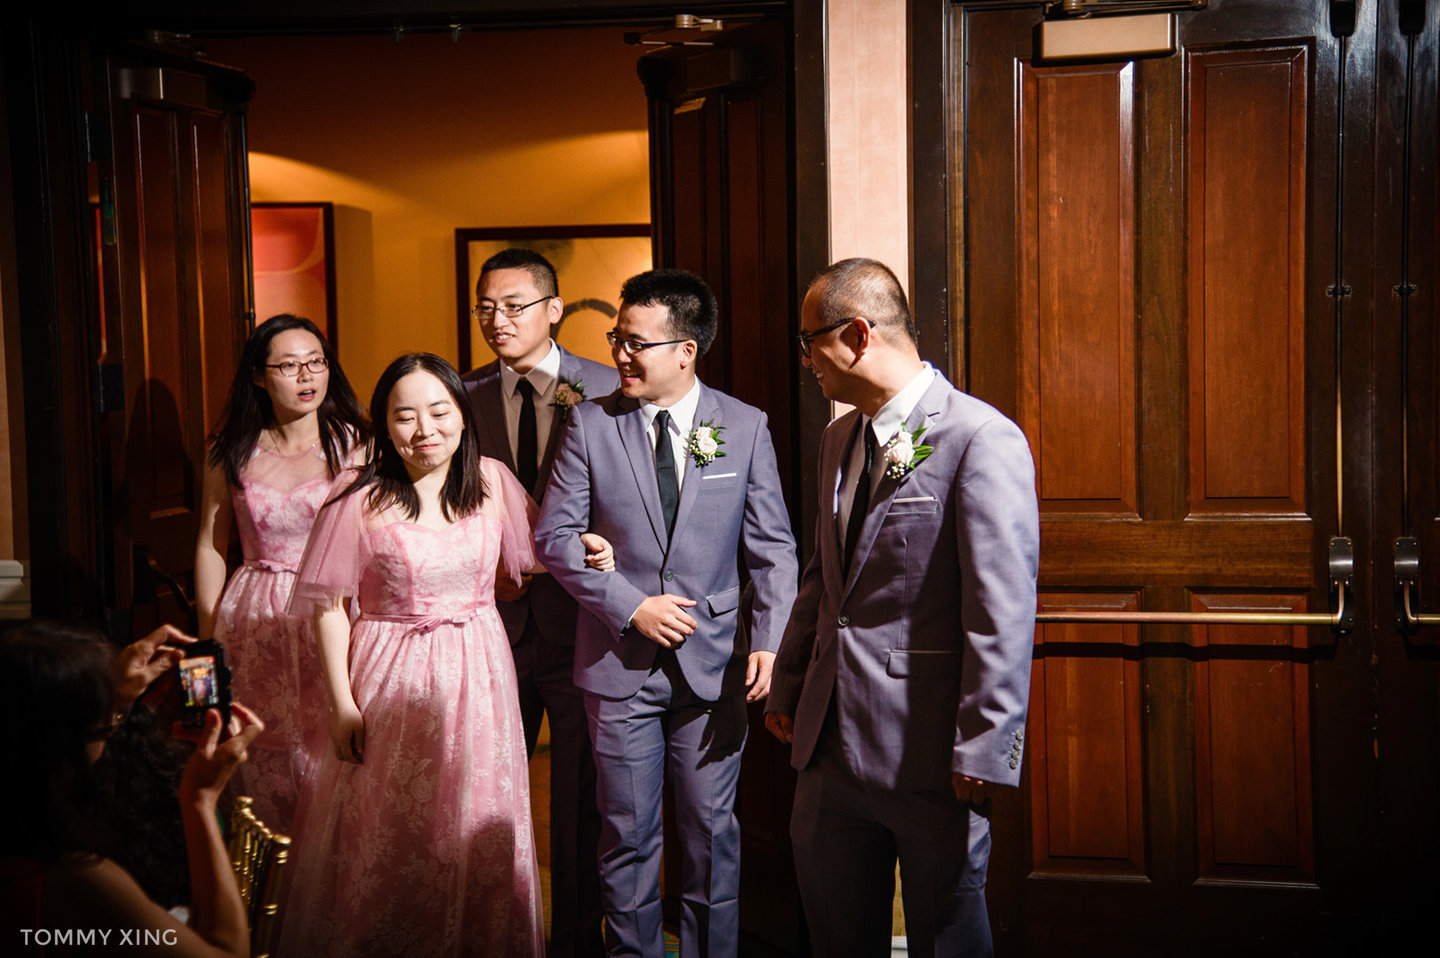 Paradise Point Resort Wedding Xiaolu & Bin San Diego 圣地亚哥婚礼摄影跟拍 Tommy Xing Photography 洛杉矶婚礼婚纱照摄影师 219.jpg